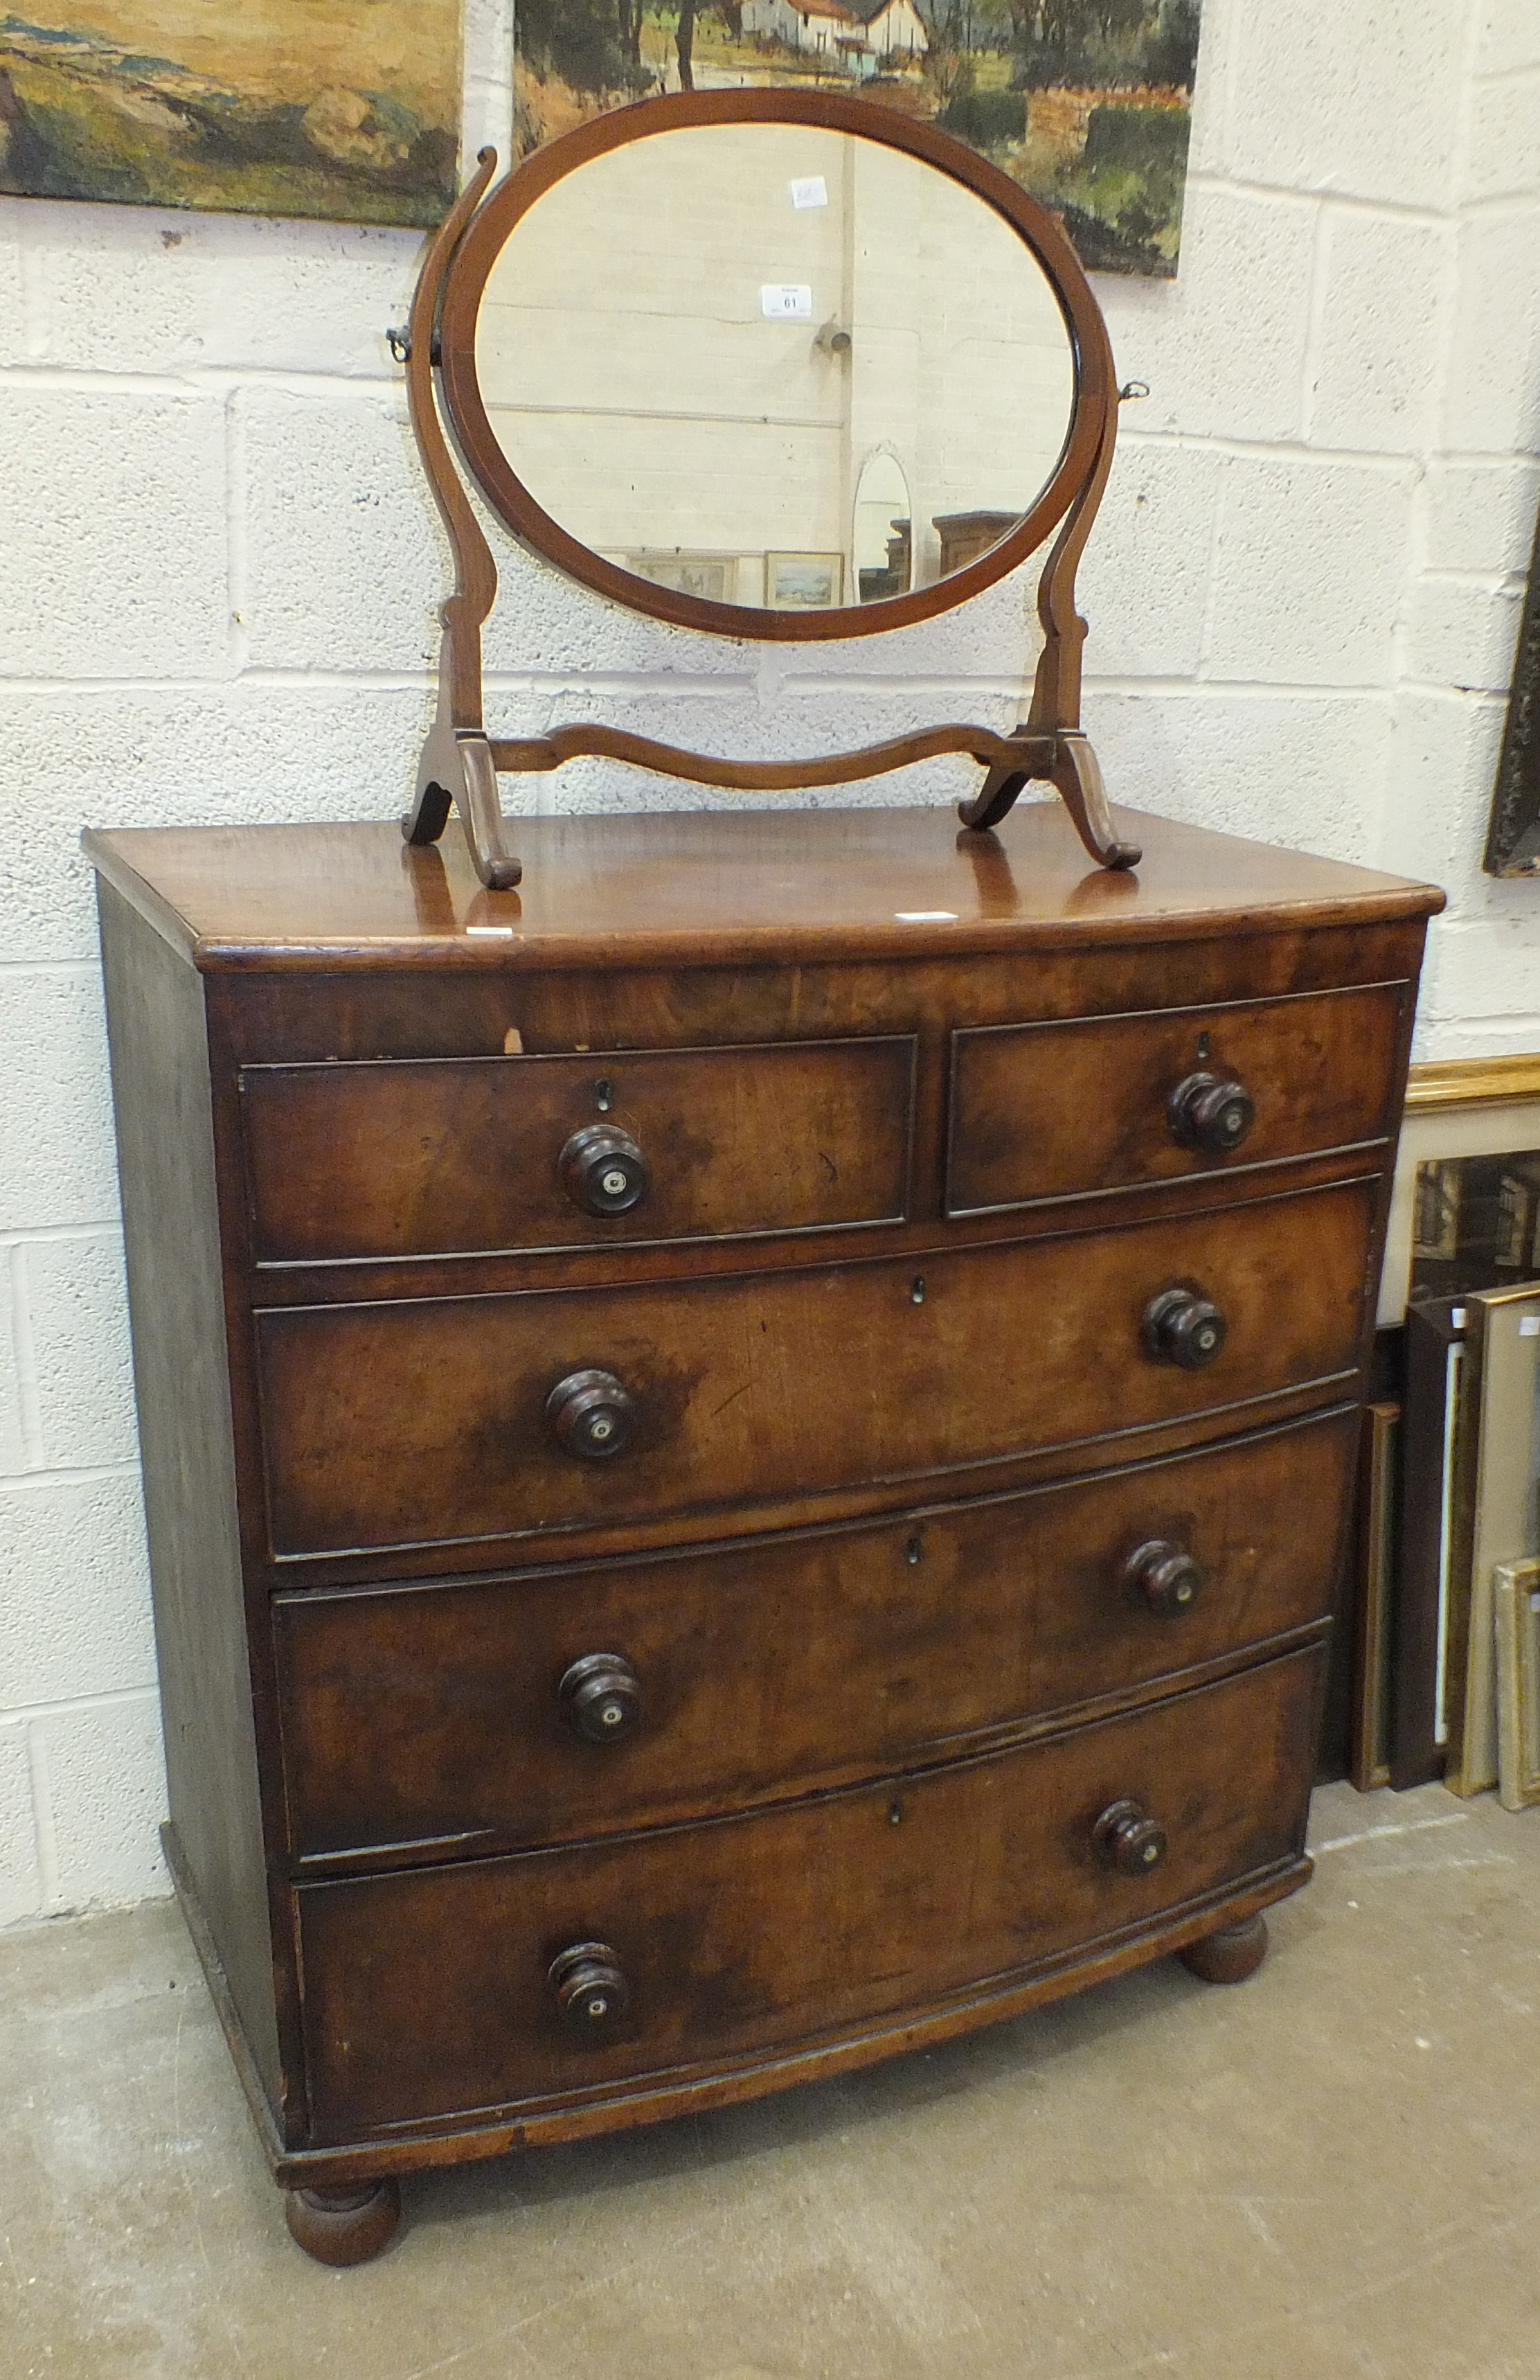 Lot 61 - A 19th century mahogany bow-fronted chest of two short and three long cockbeaded drawers, on